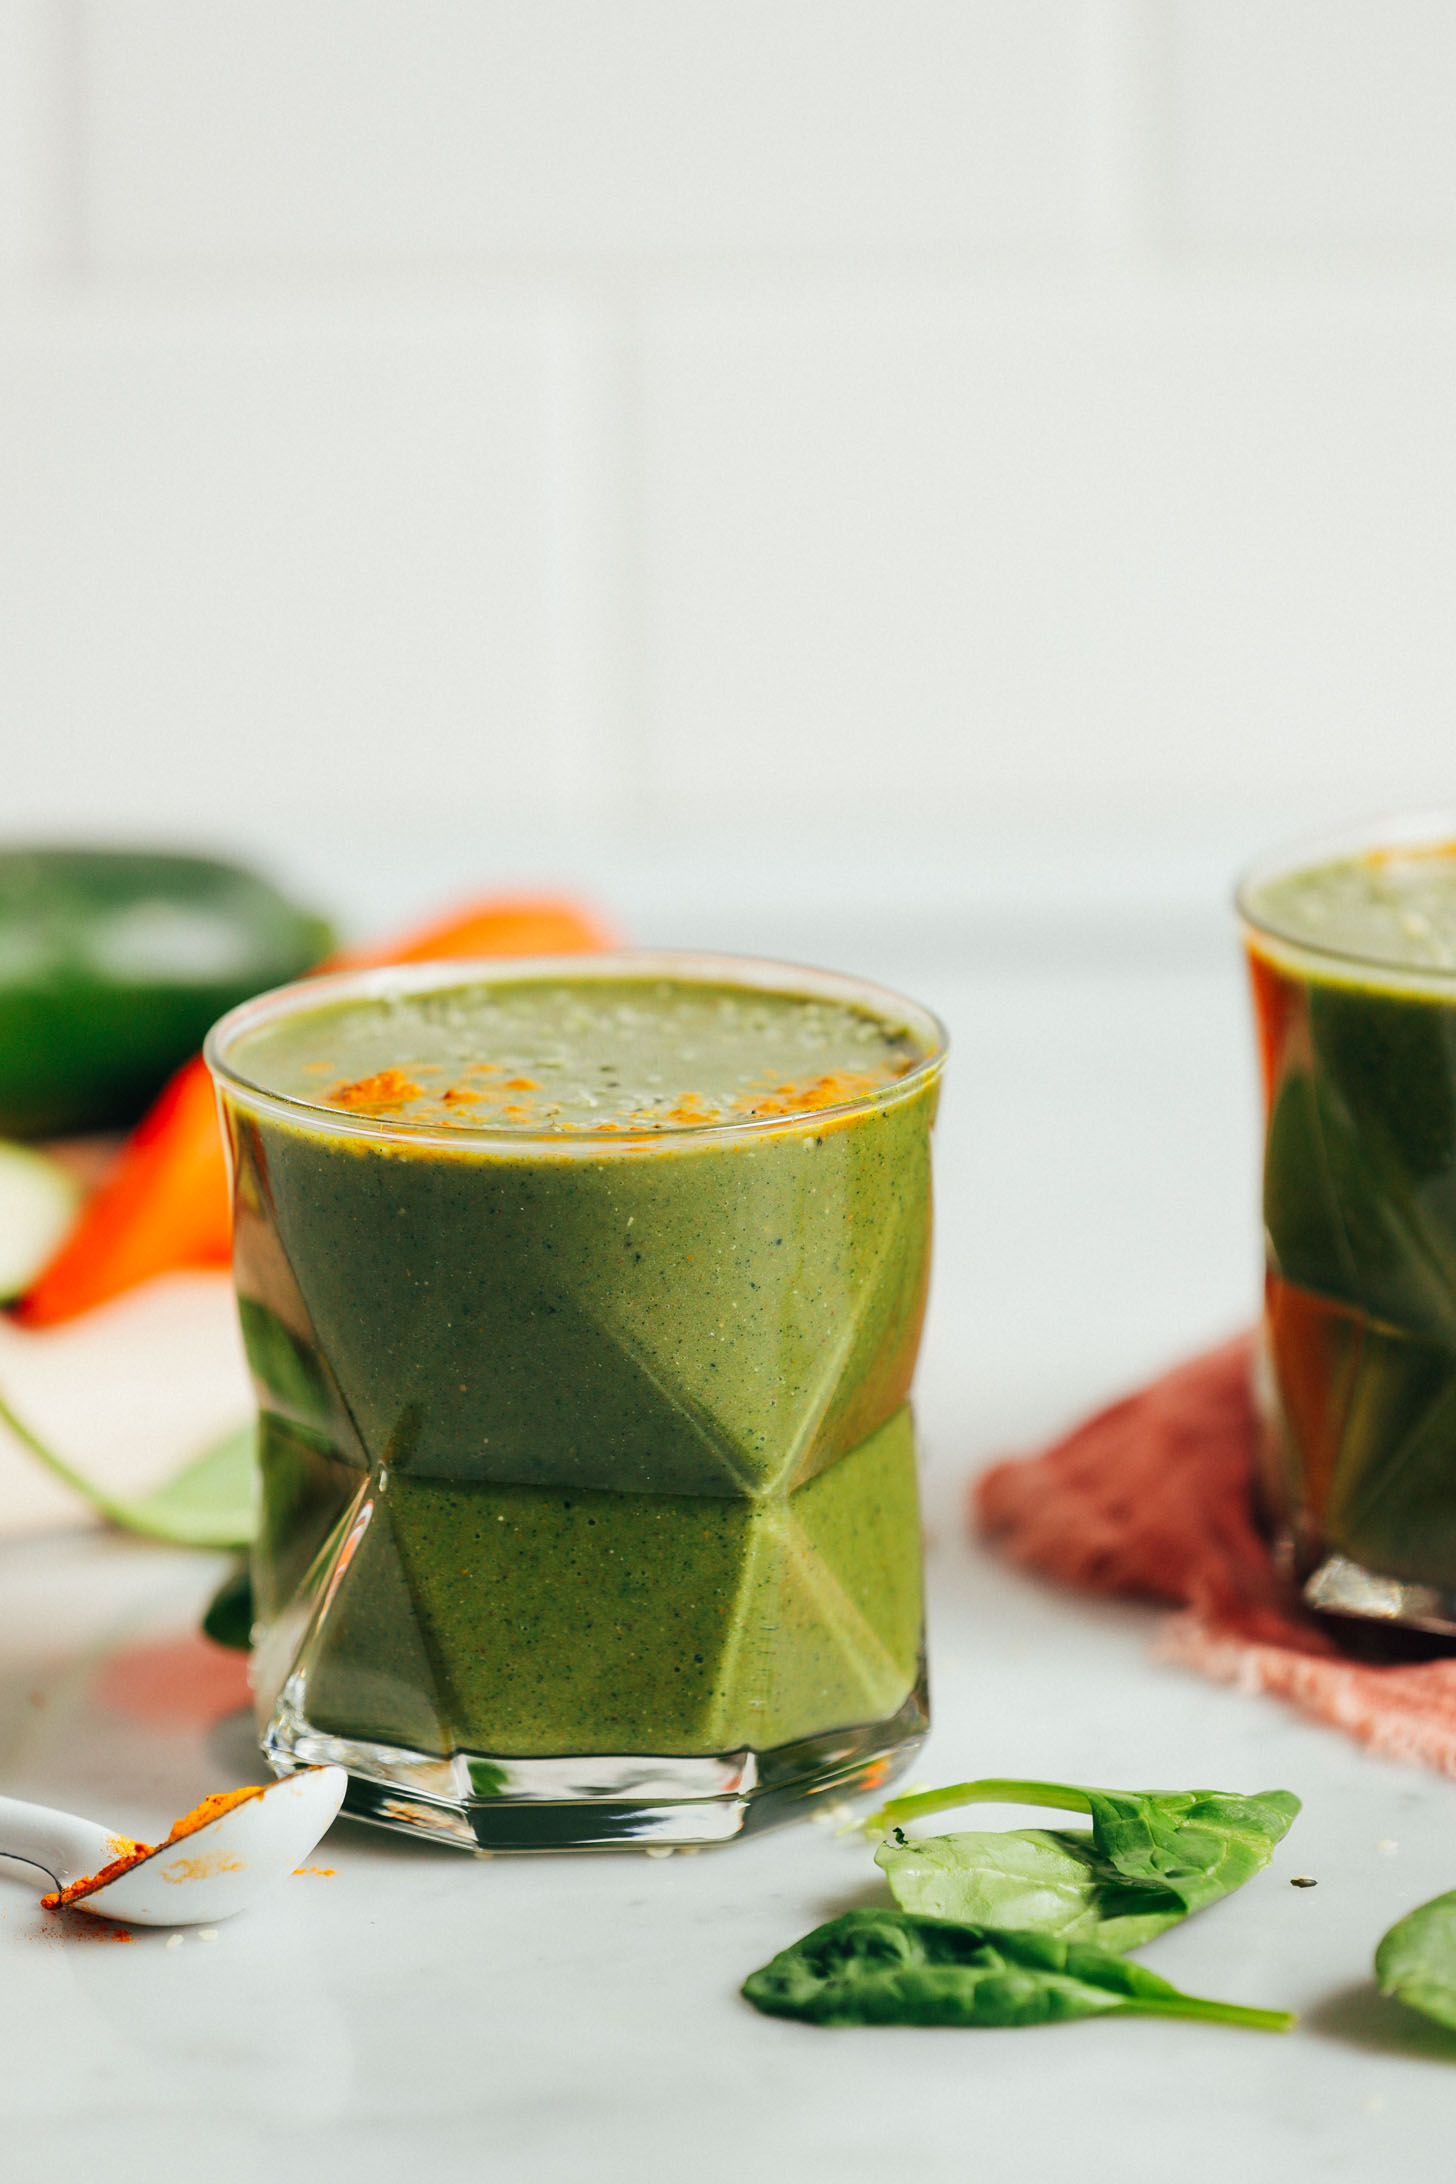 Straight on image of warming winter green smoothie in a glass with carrot, zucchini, and ground turmeric on the side